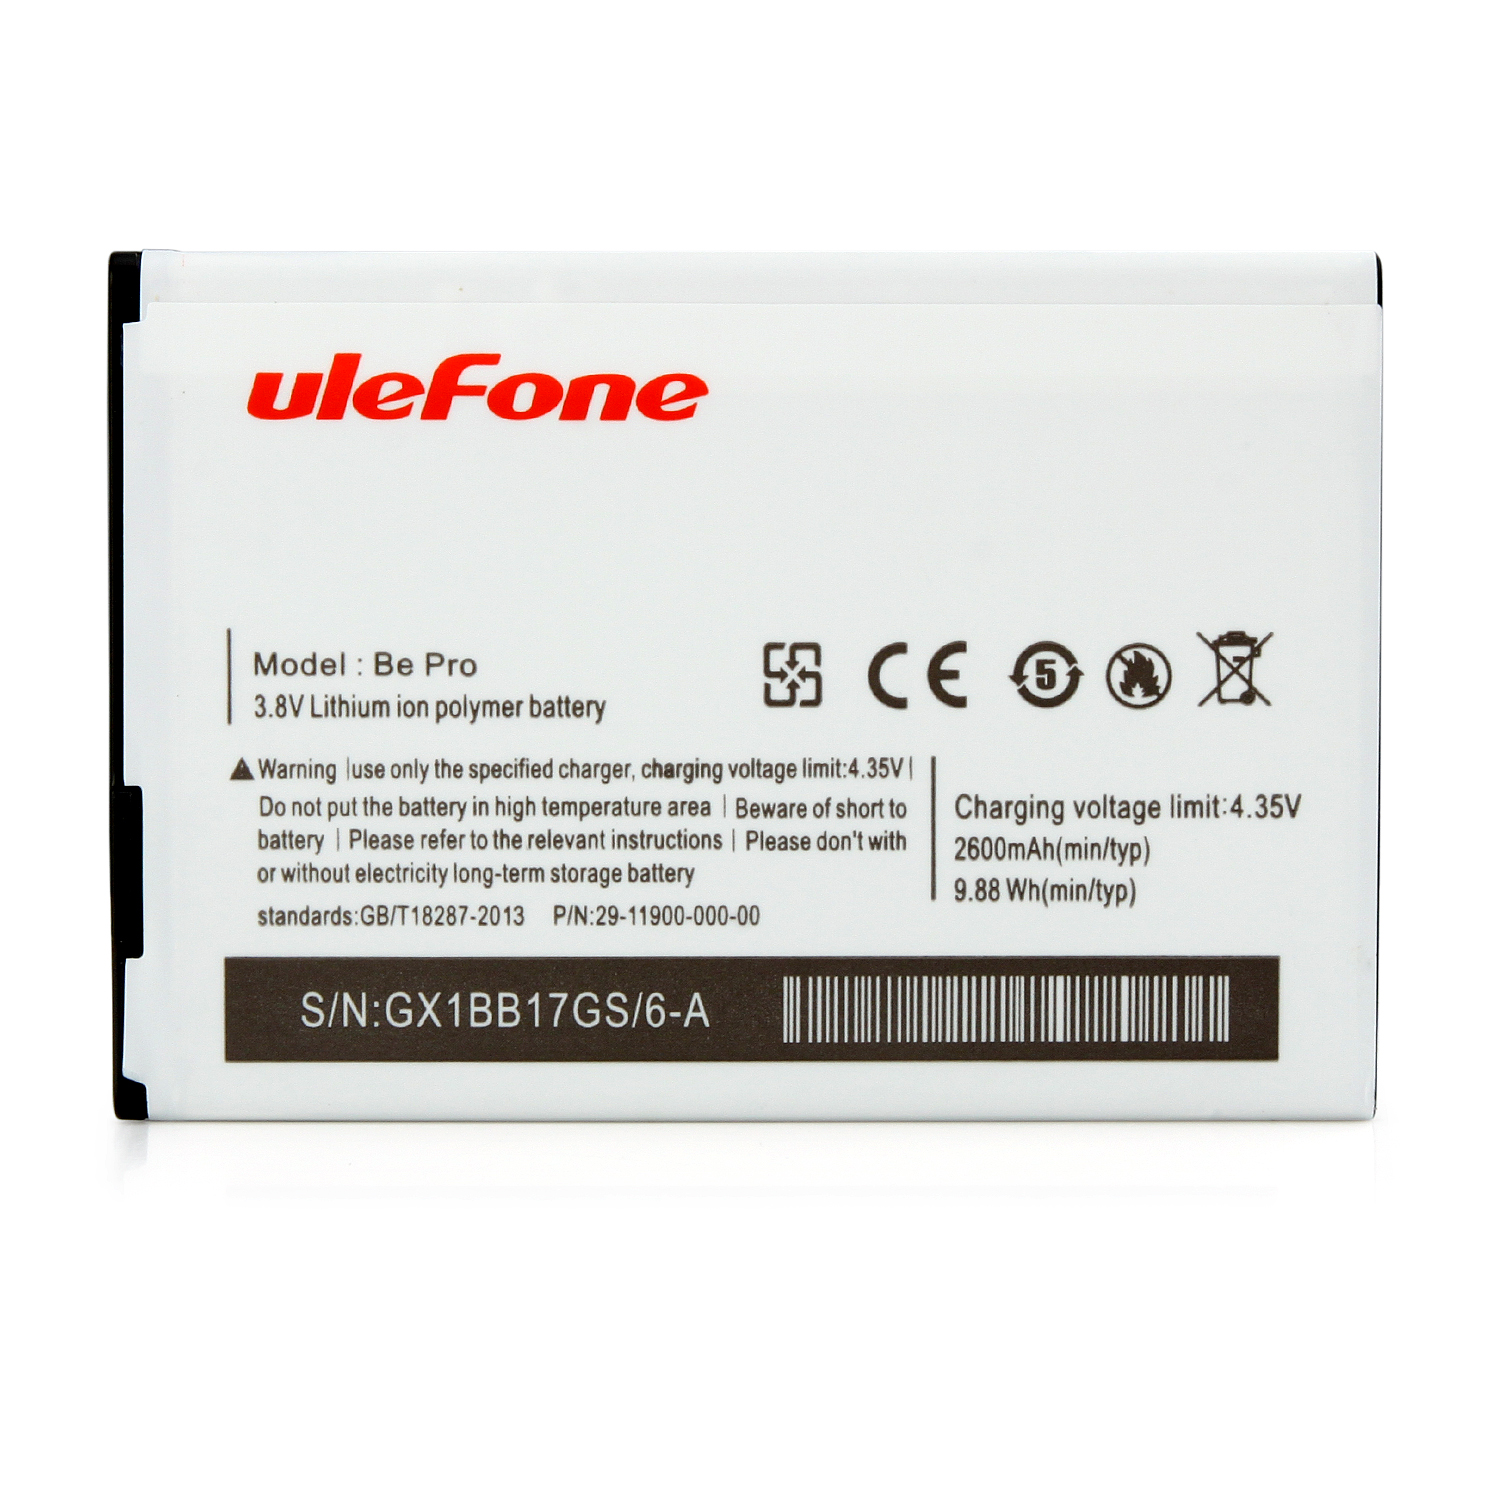 "uleFone Be Pro Smartphone Android 5.0 4G 64bit MTK6732 Quad Core 5.5"" 2GB 16GB Black"